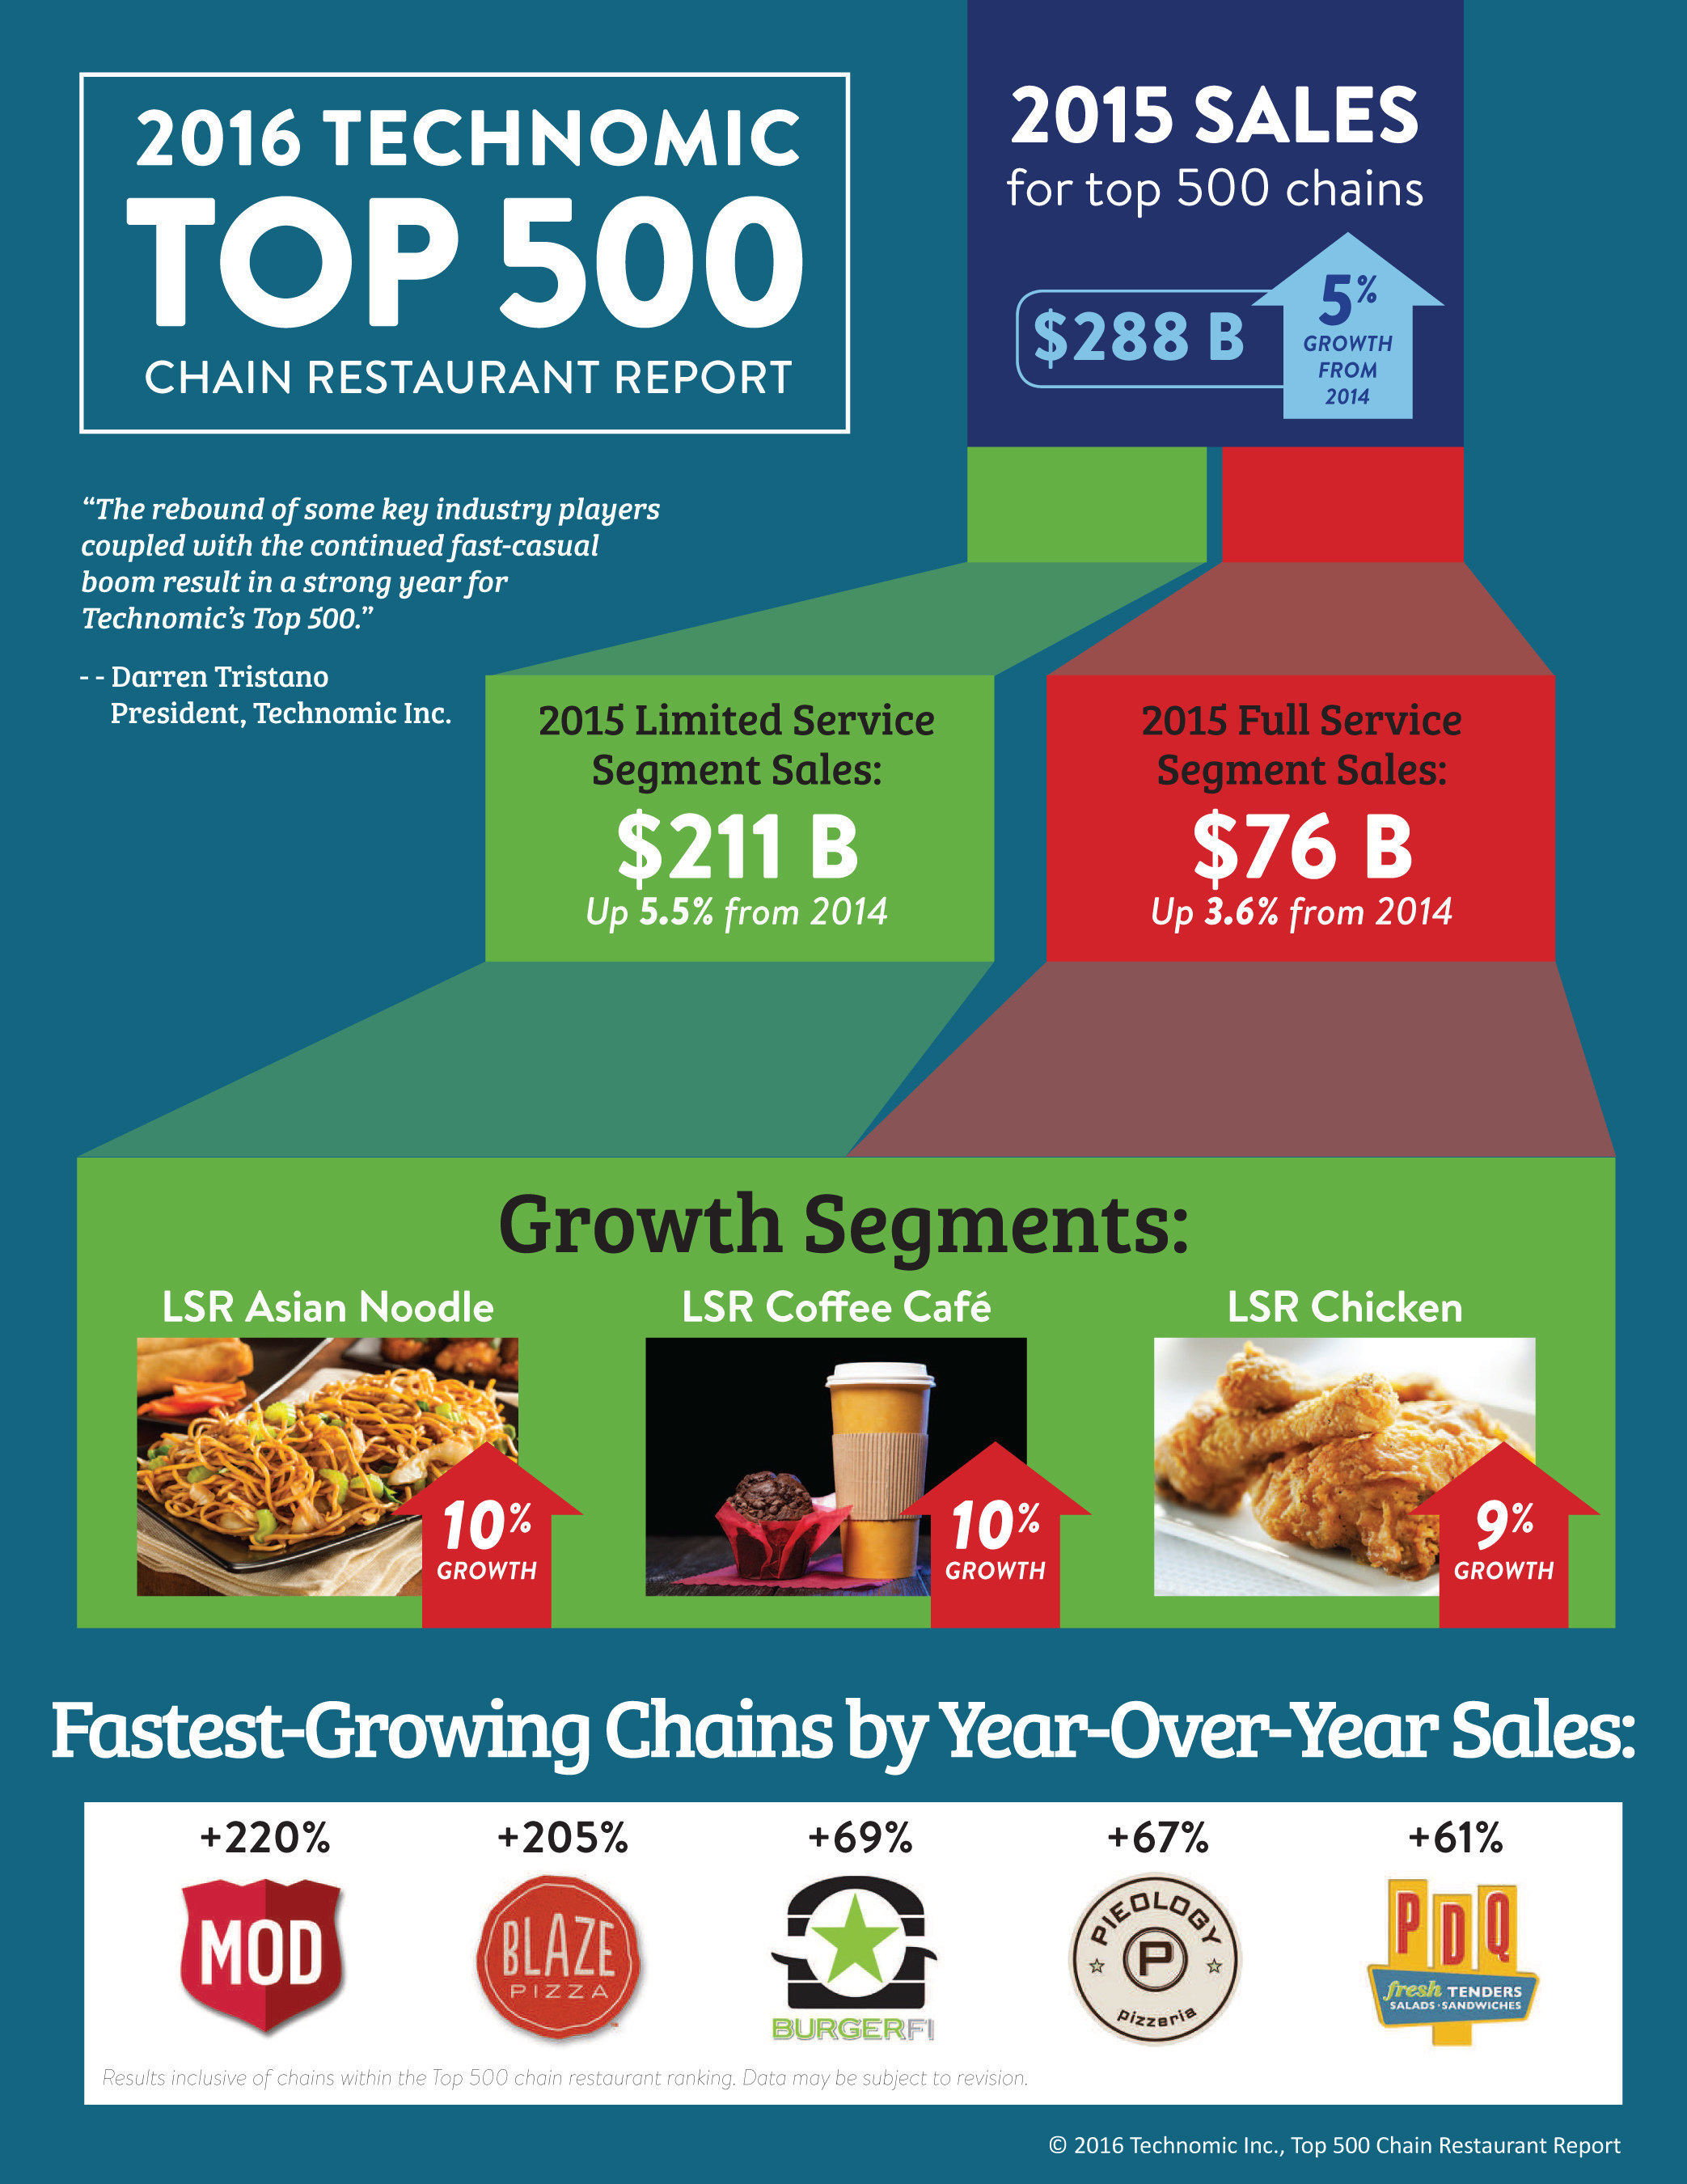 This year's Top 500 Chain Restaurant Report from Technomic has a clear message: Limited-service chains are in the driver's seat.